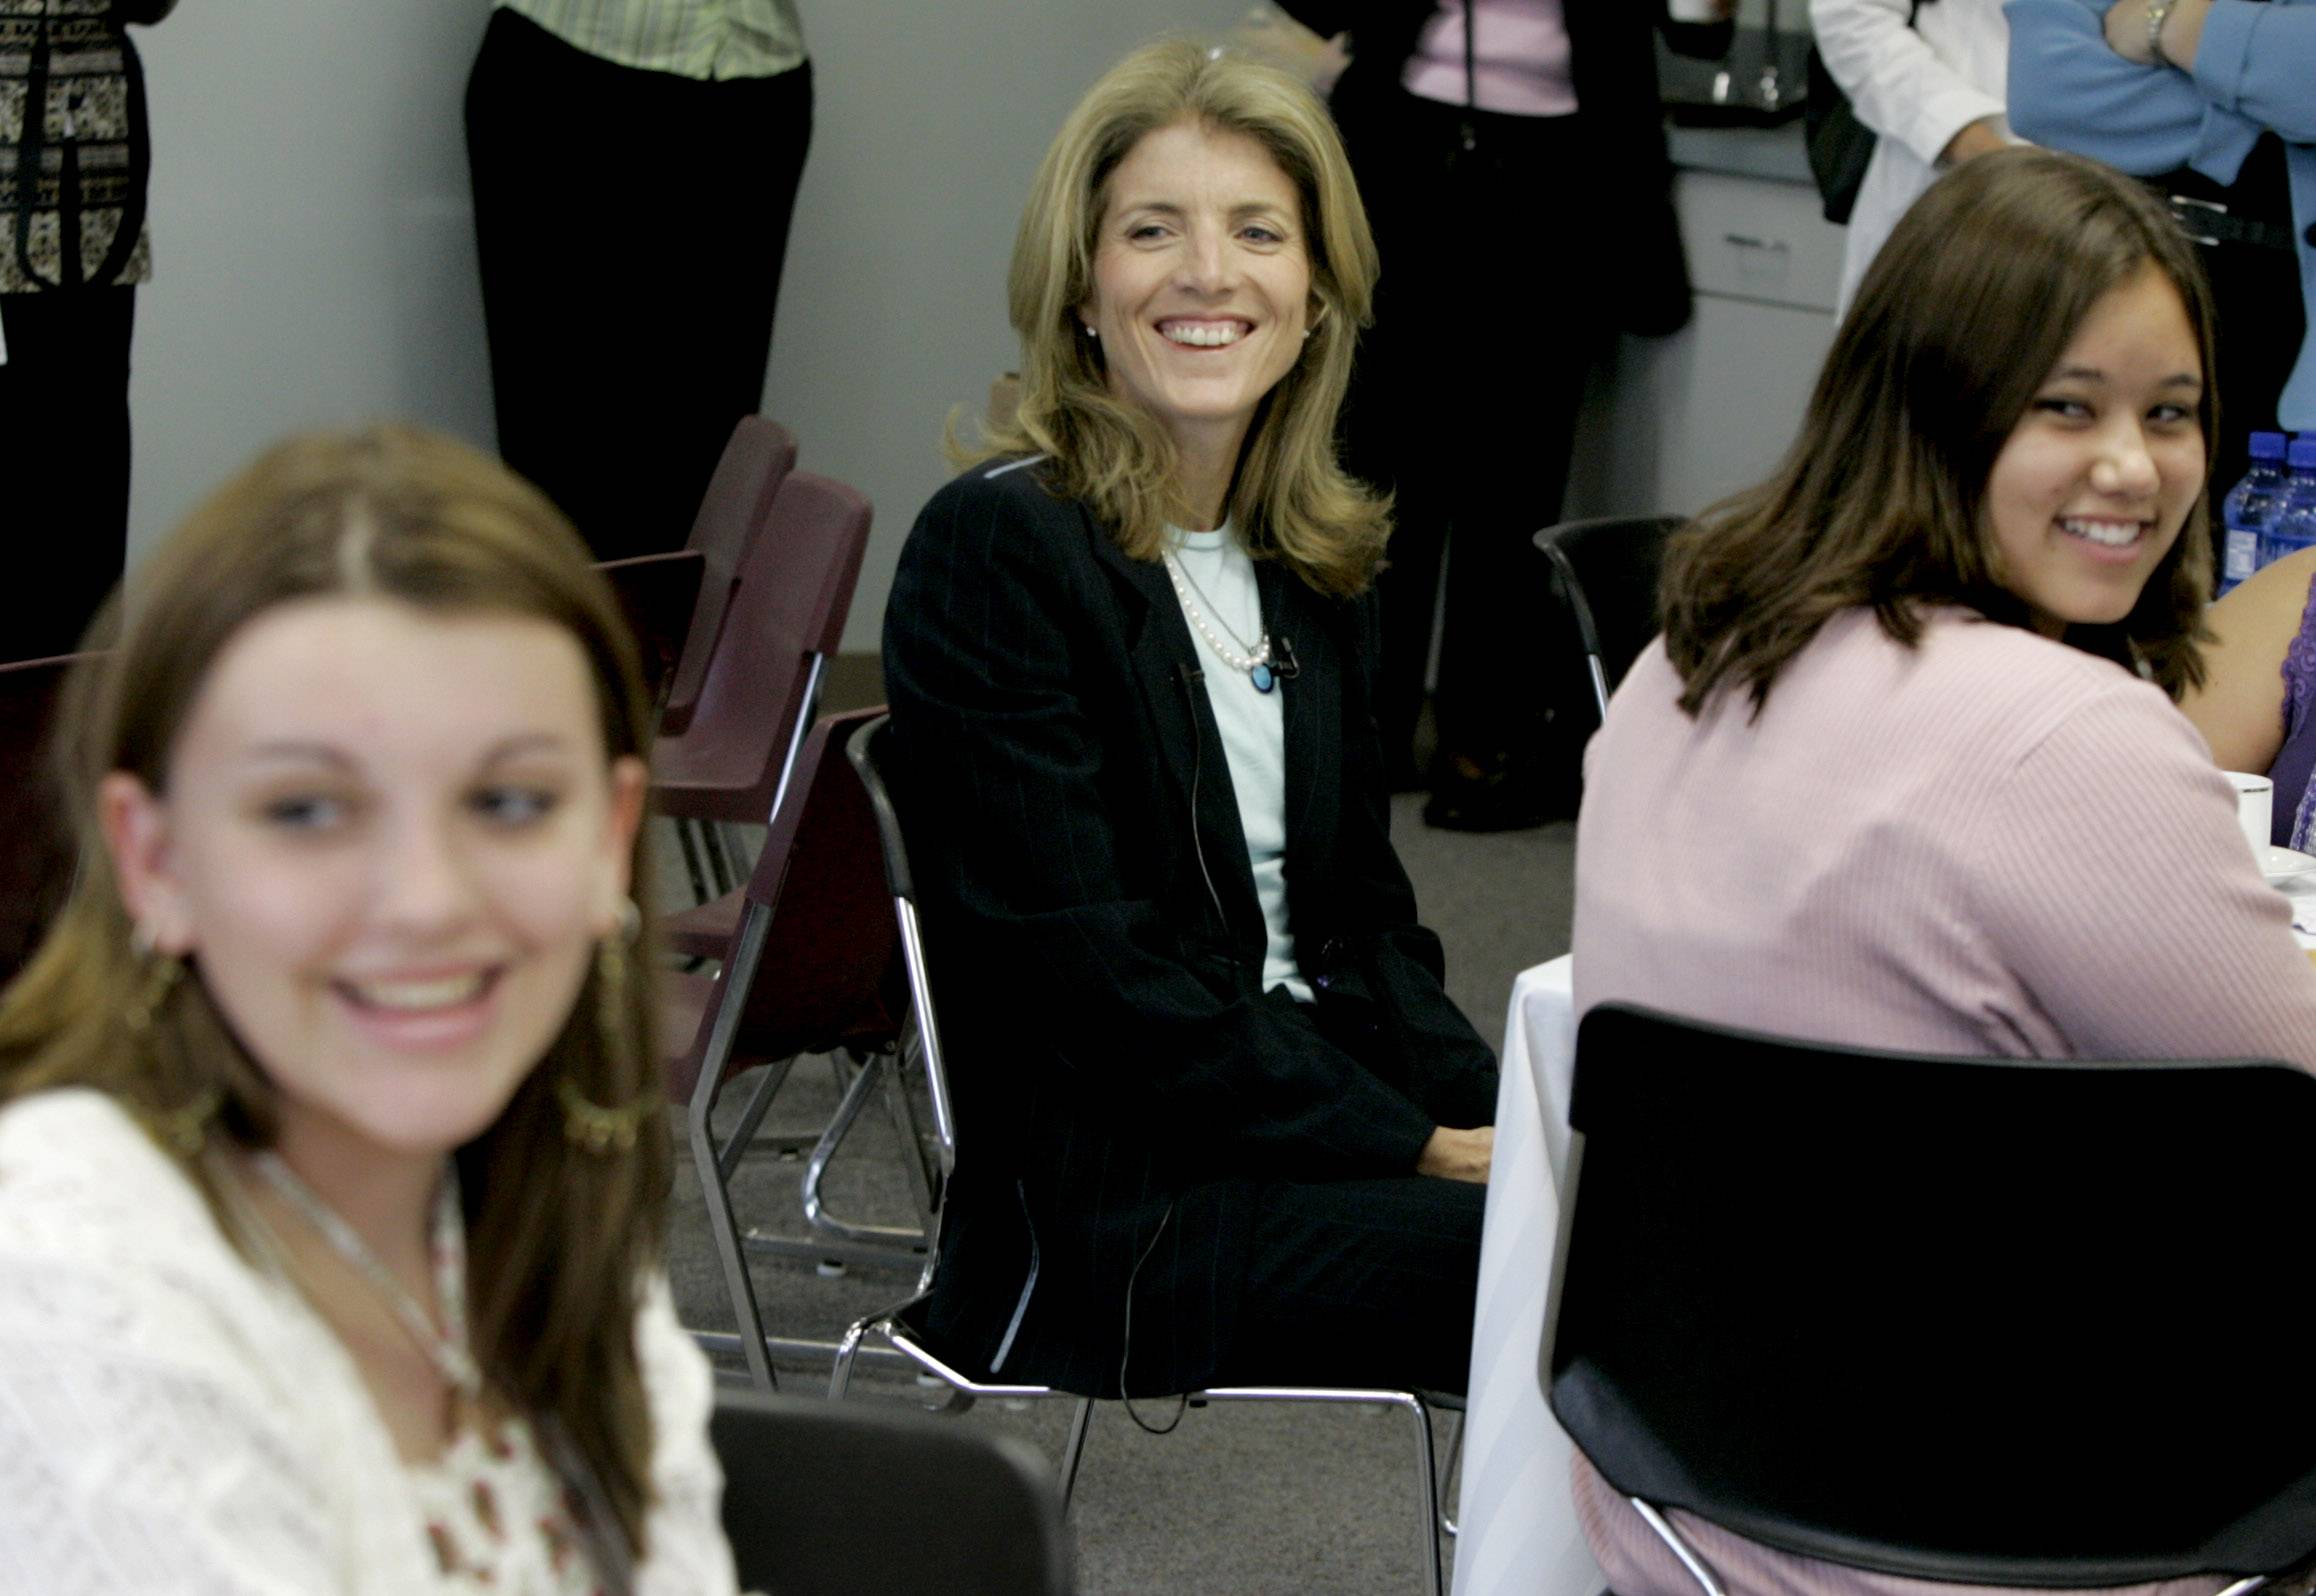 Caroline Kennedy has come to Naperville five times, sharing her mother's love of poetry with generations of fans. She also used one appearance to raise money for local at-risk students.